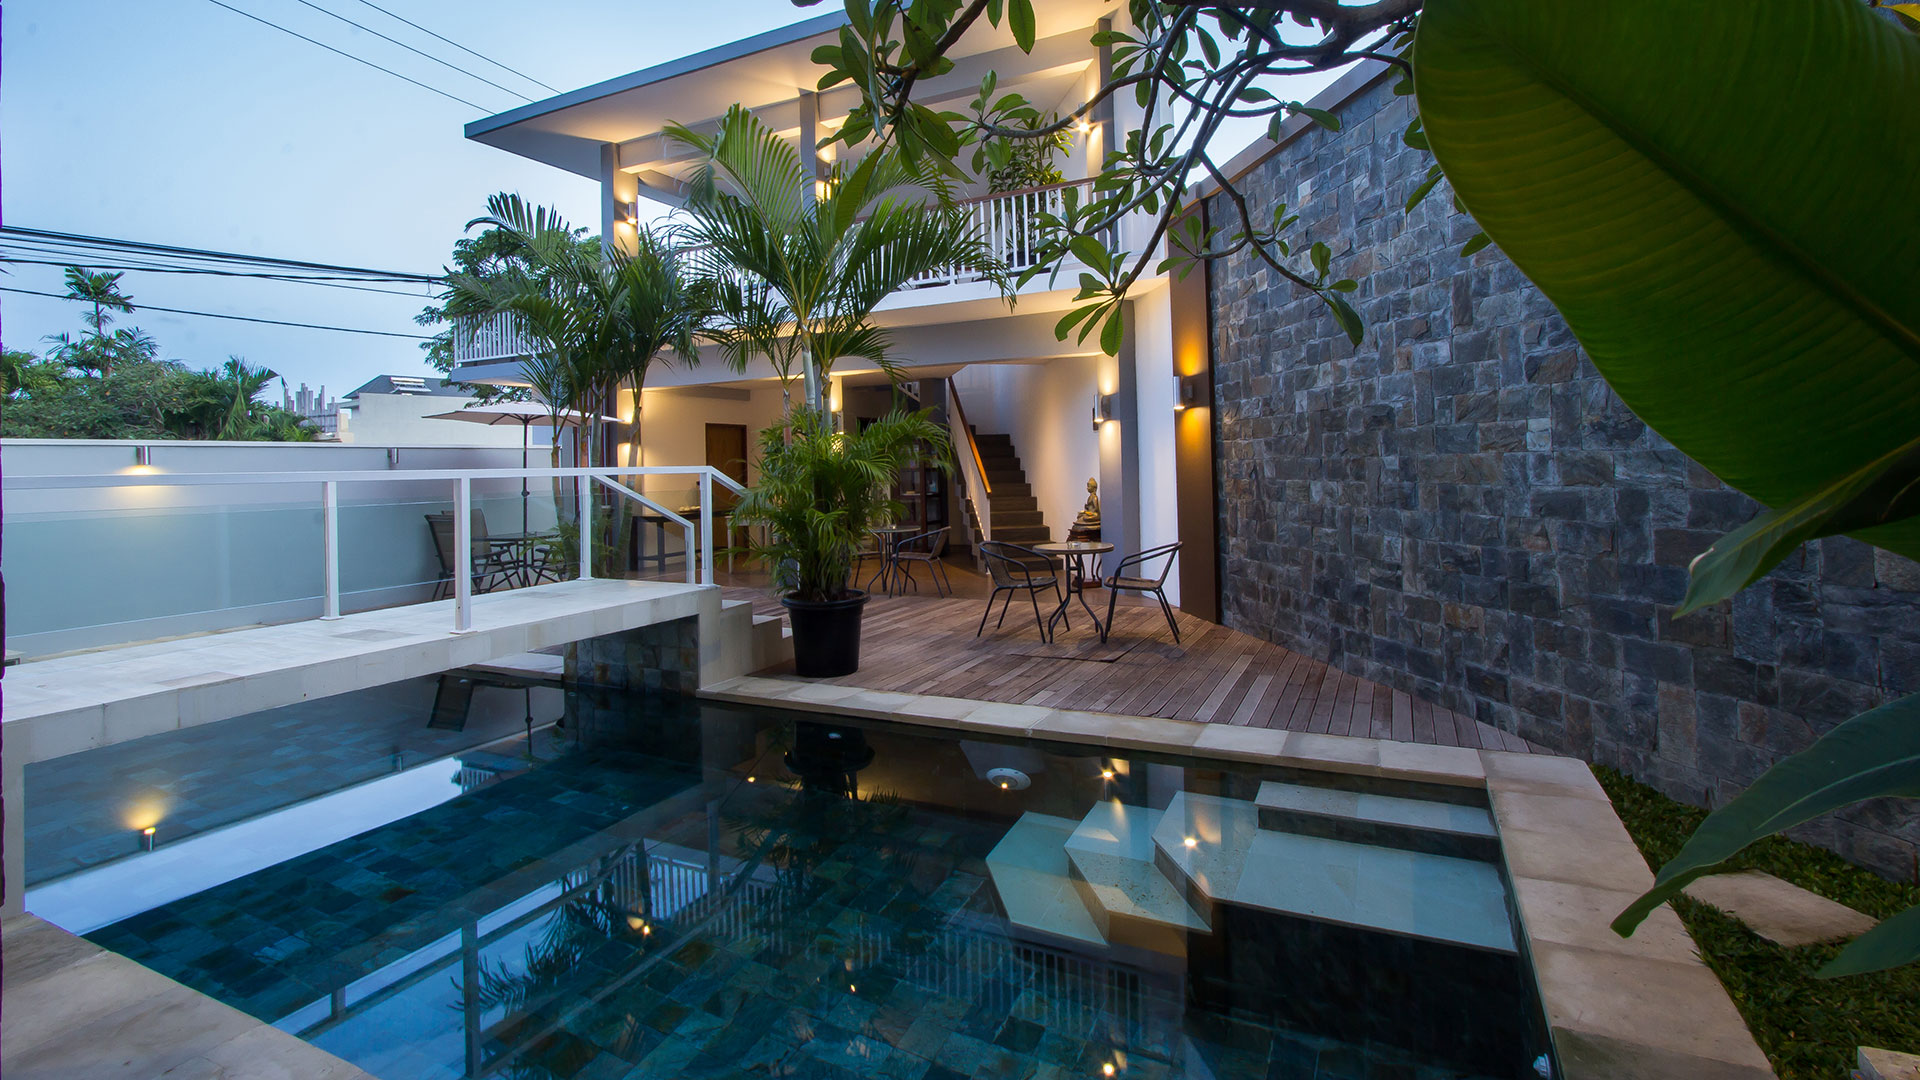 Photos of M Suite, Luxury minimalist hotel located in Jl. Bali Baik, Seminyak